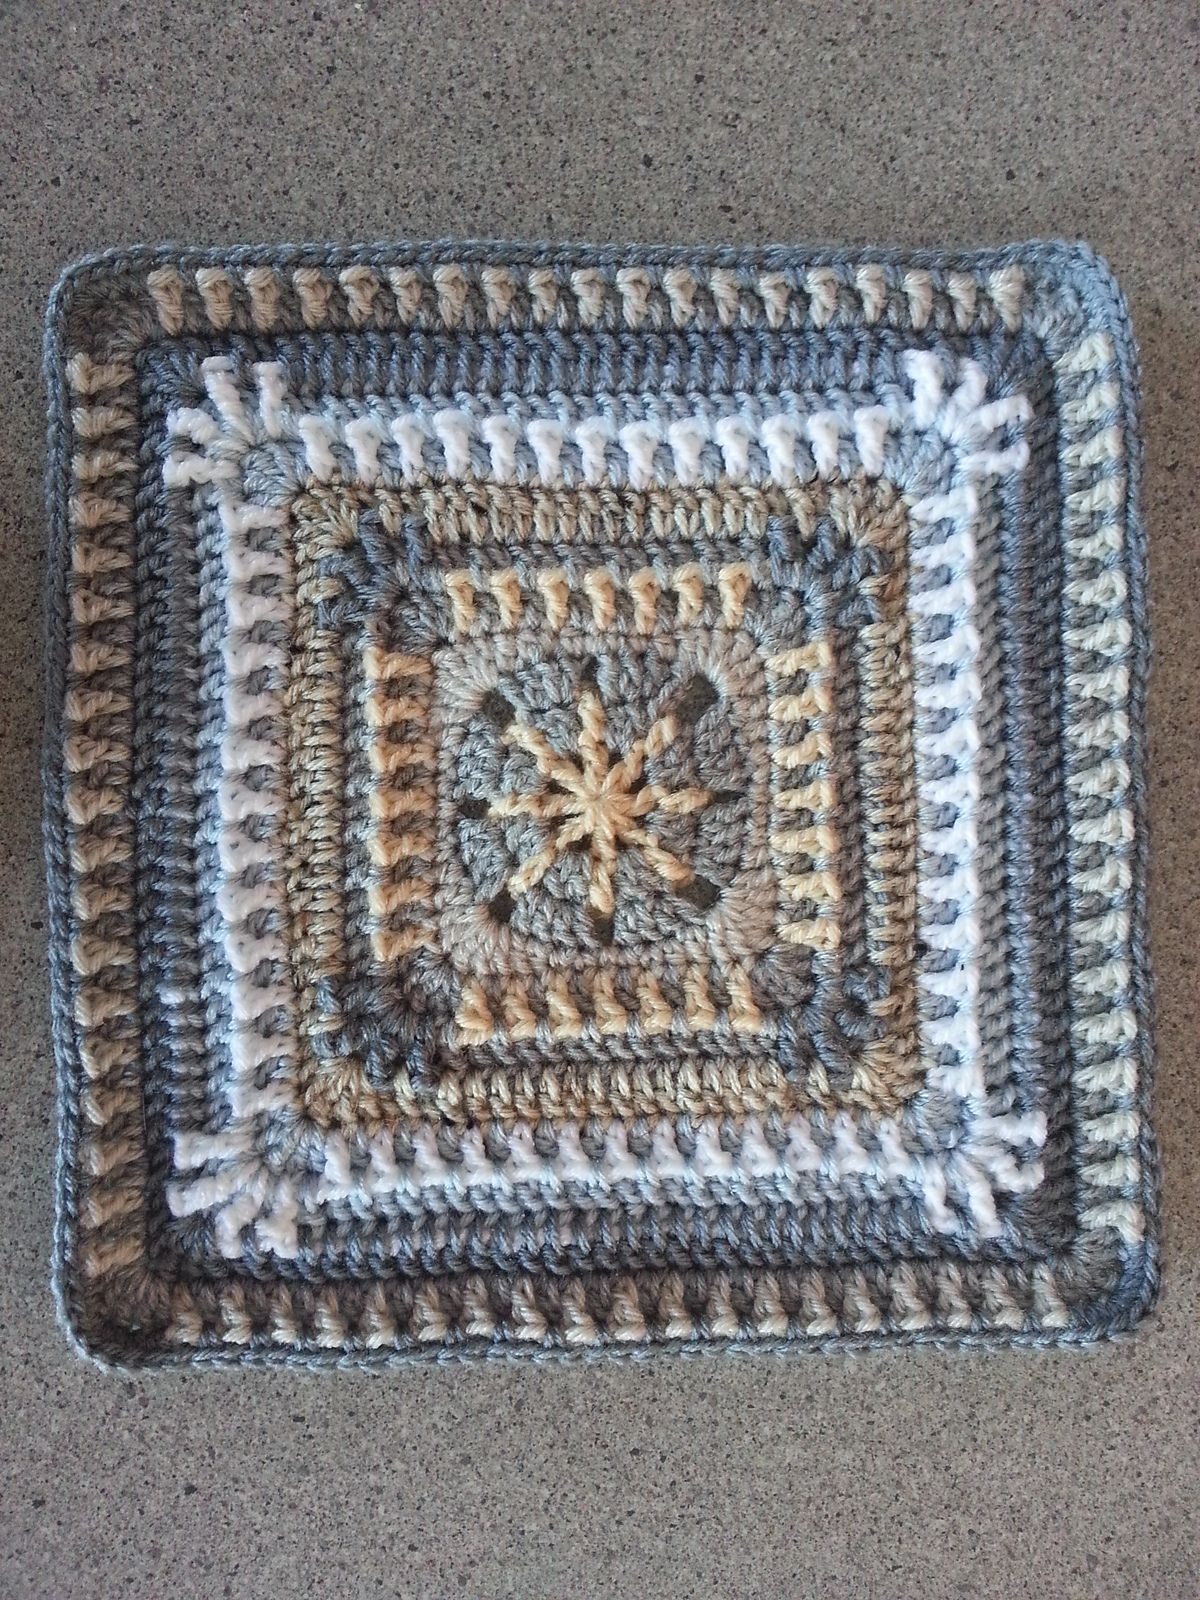 Raindrop block motif by donna kay lacey free crochet pattern ravelry project gallery for raindrop block pattern by donna kay lacey bankloansurffo Image collections